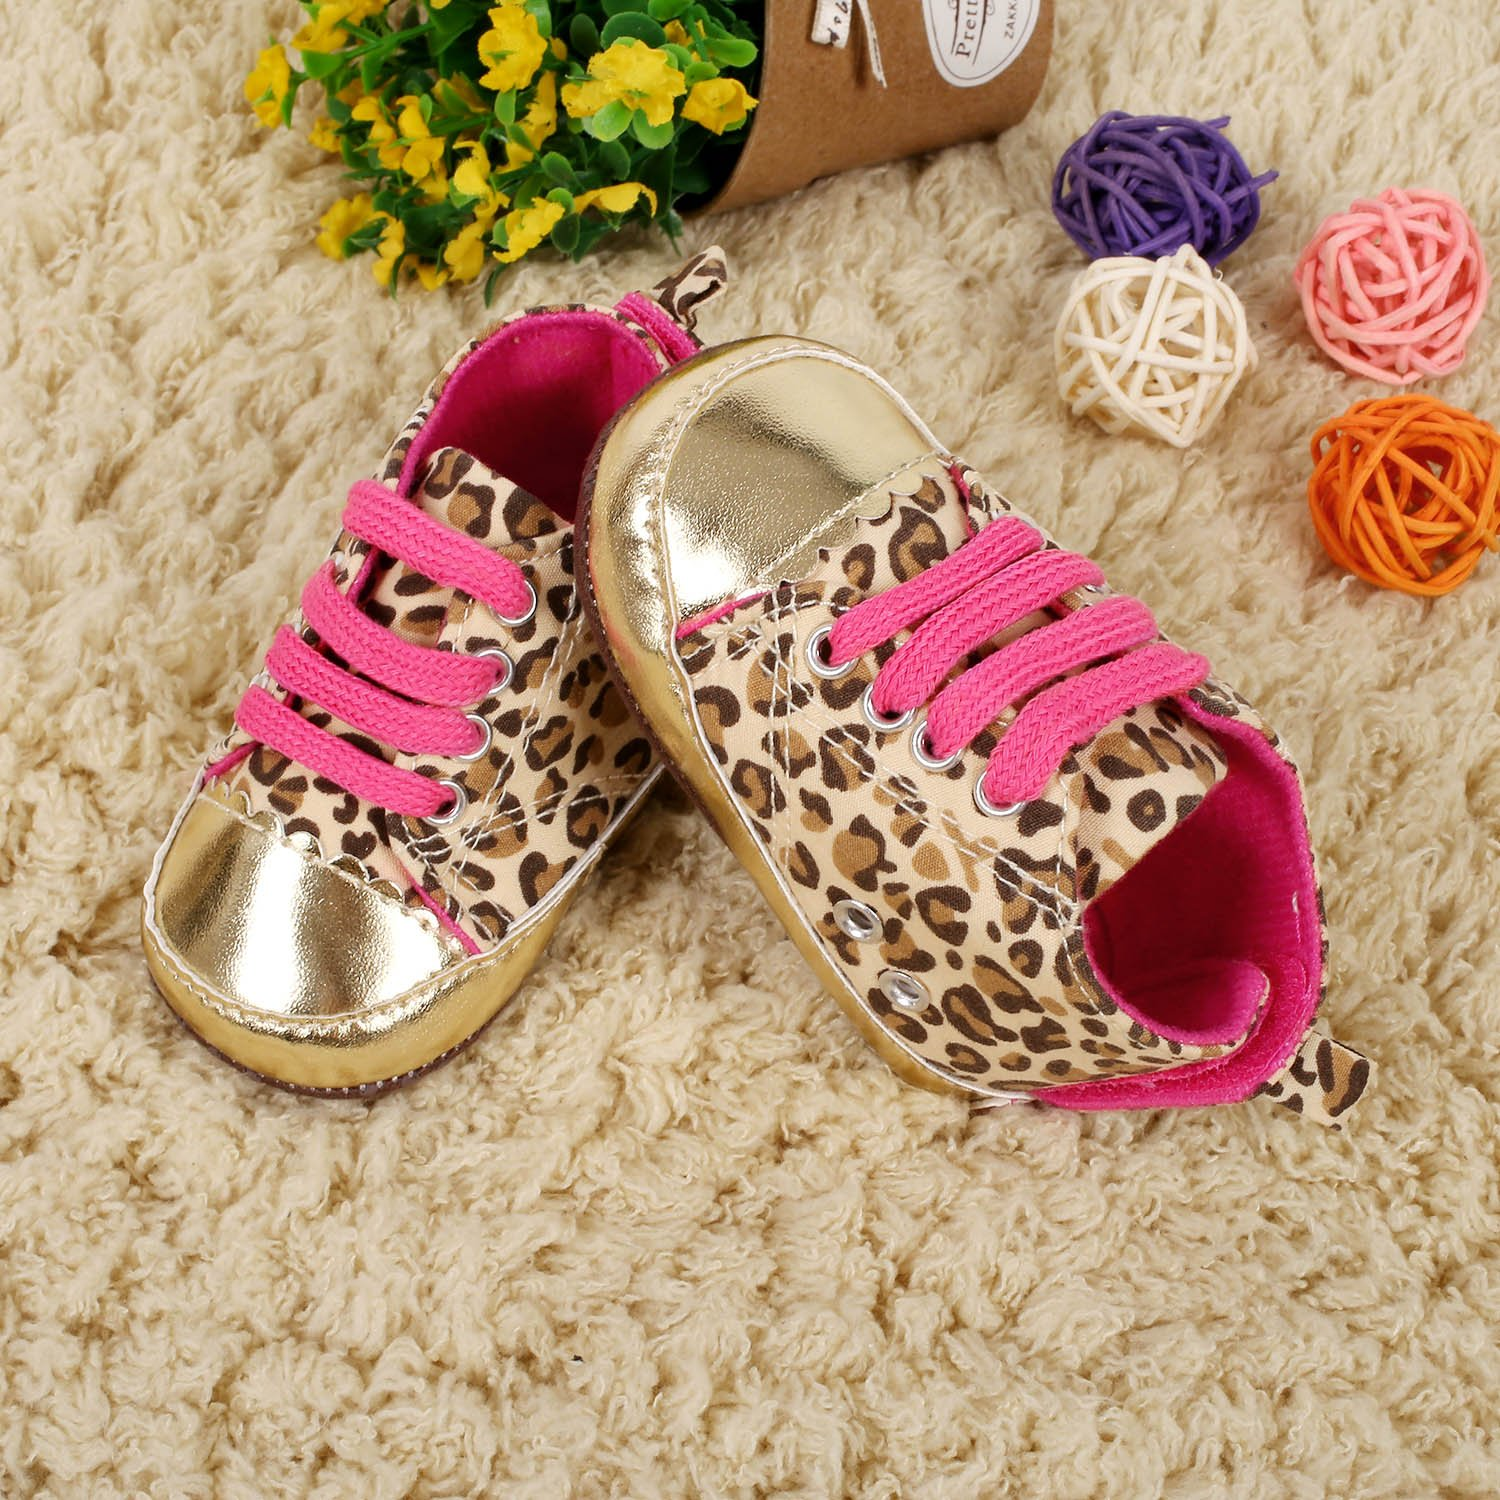 3-6M Cute Baby Toddler Infant Leopard Crib Shoes Soft Sole 3-18 Months 11cm